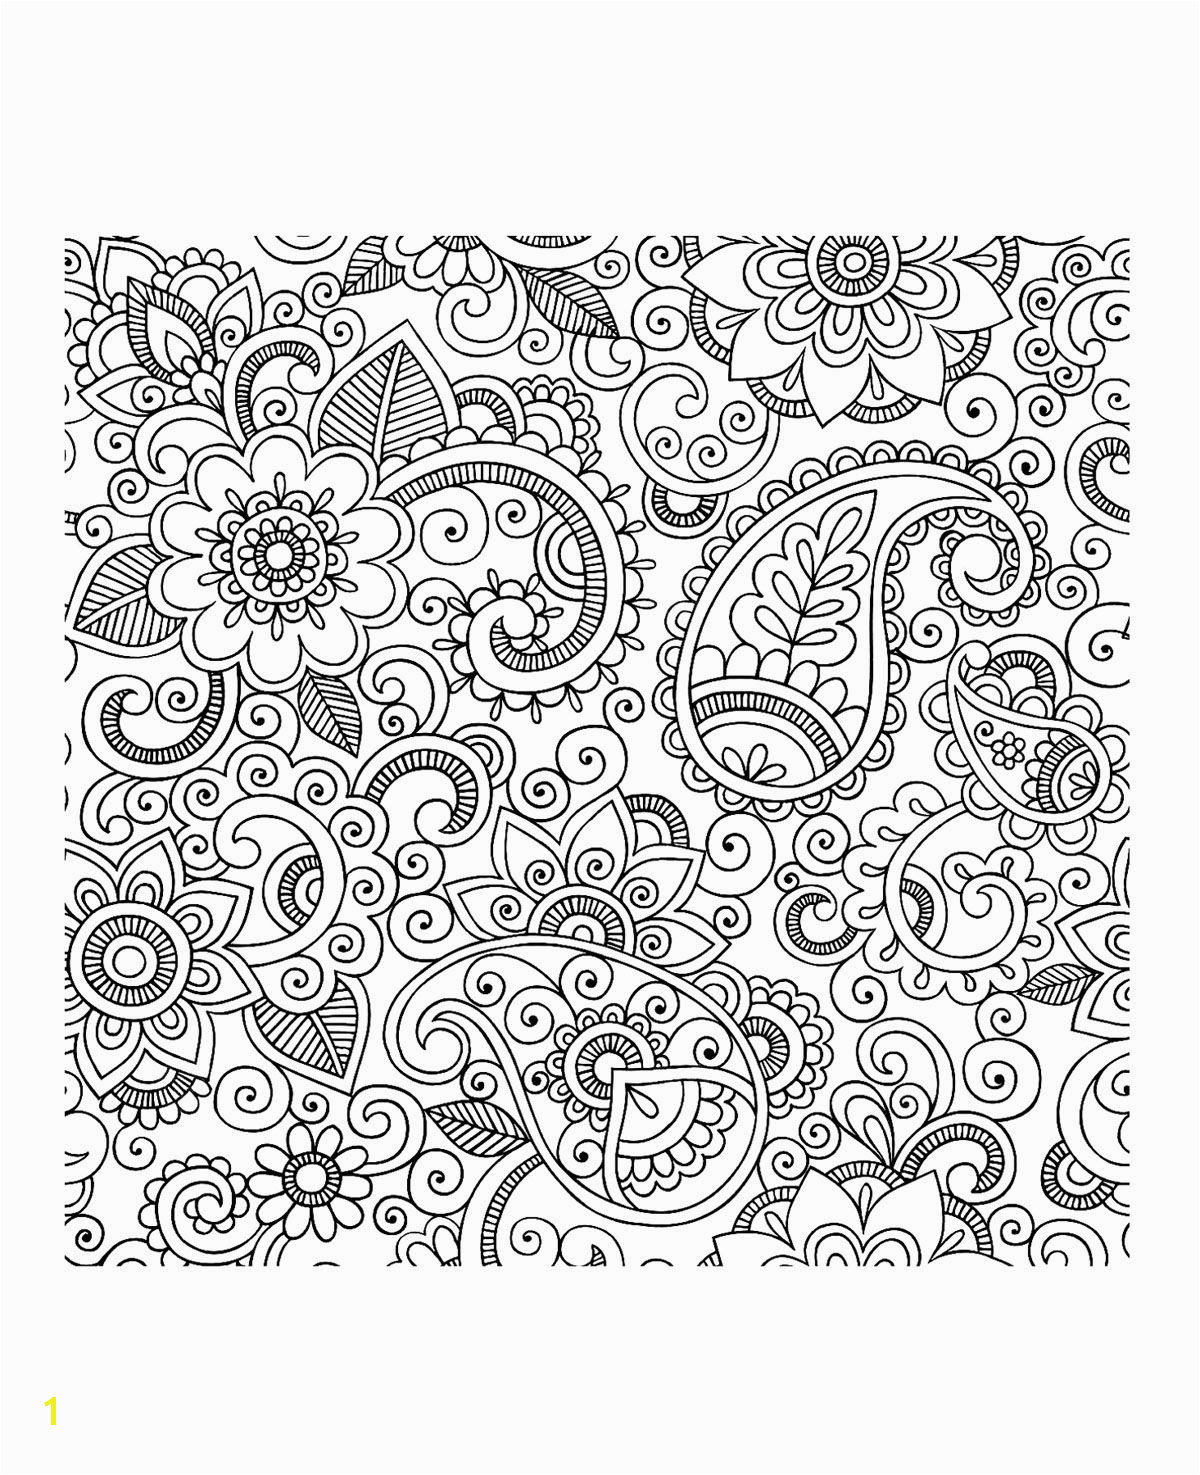 To print this free coloring page coloring adult paisley iran click on the printer icon at the right